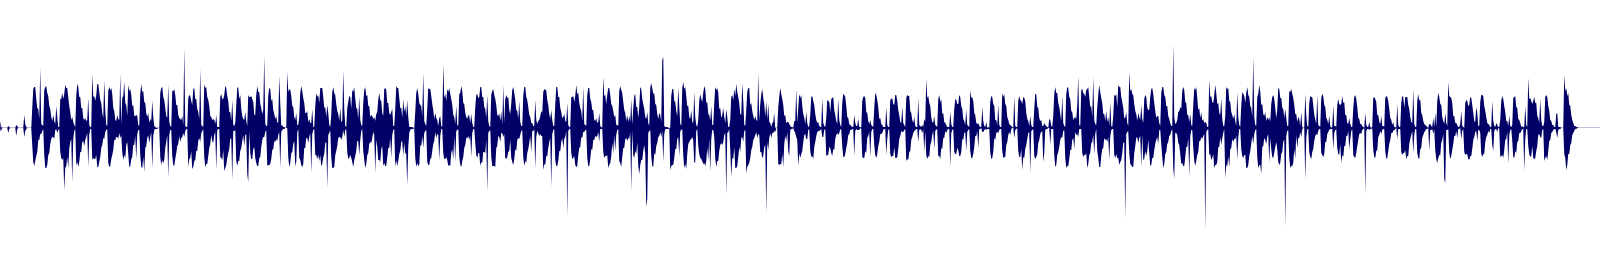 waveform of track #107702